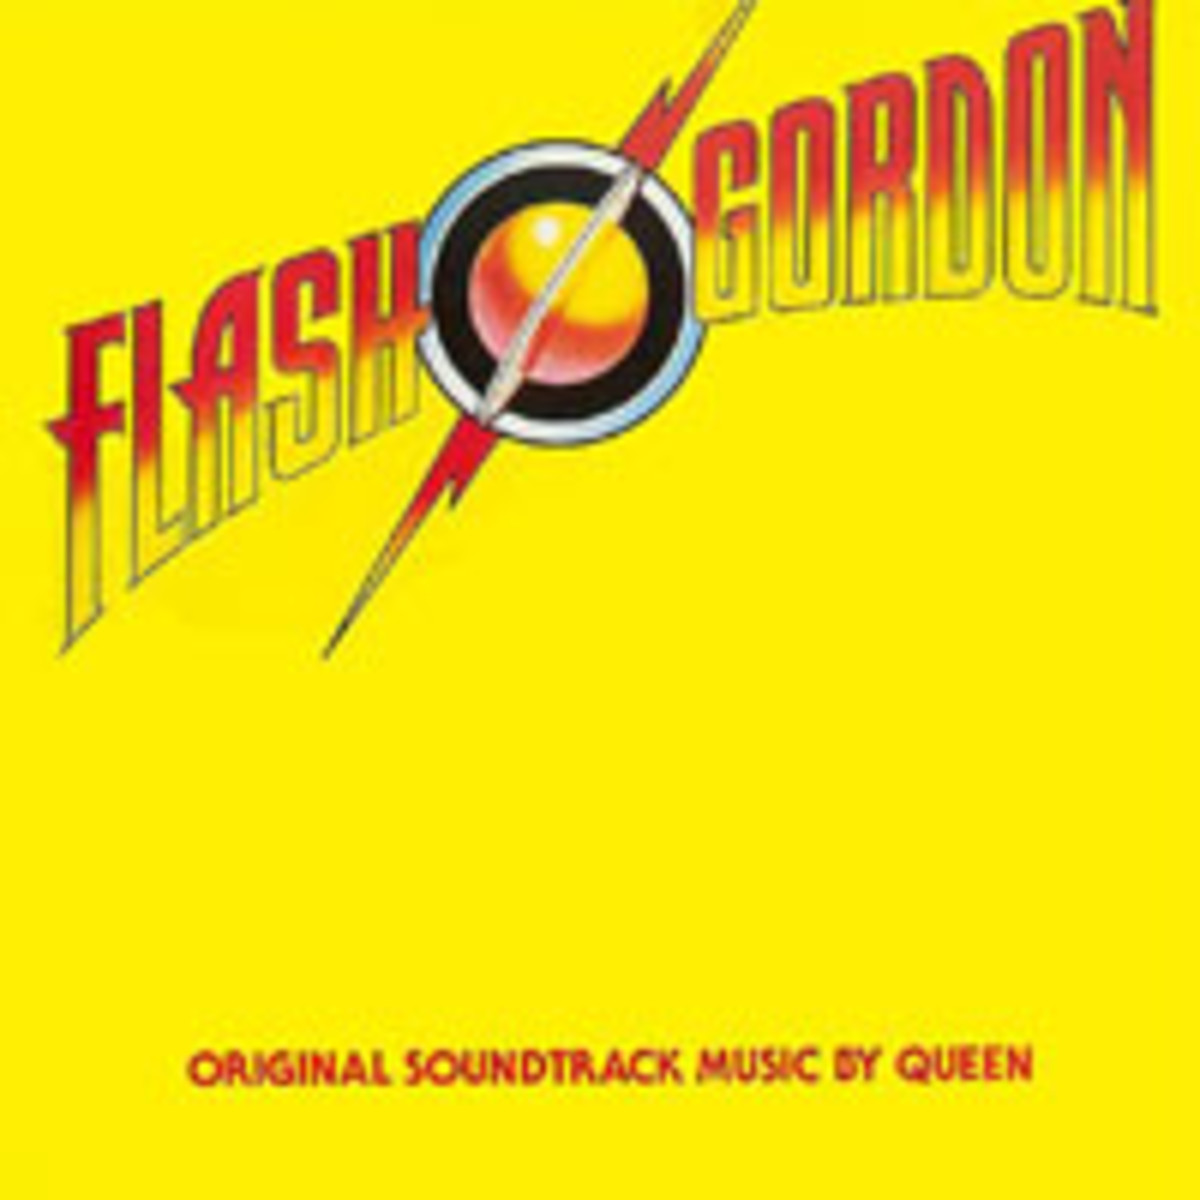 Flash Gordon original soundtrack music by Queen